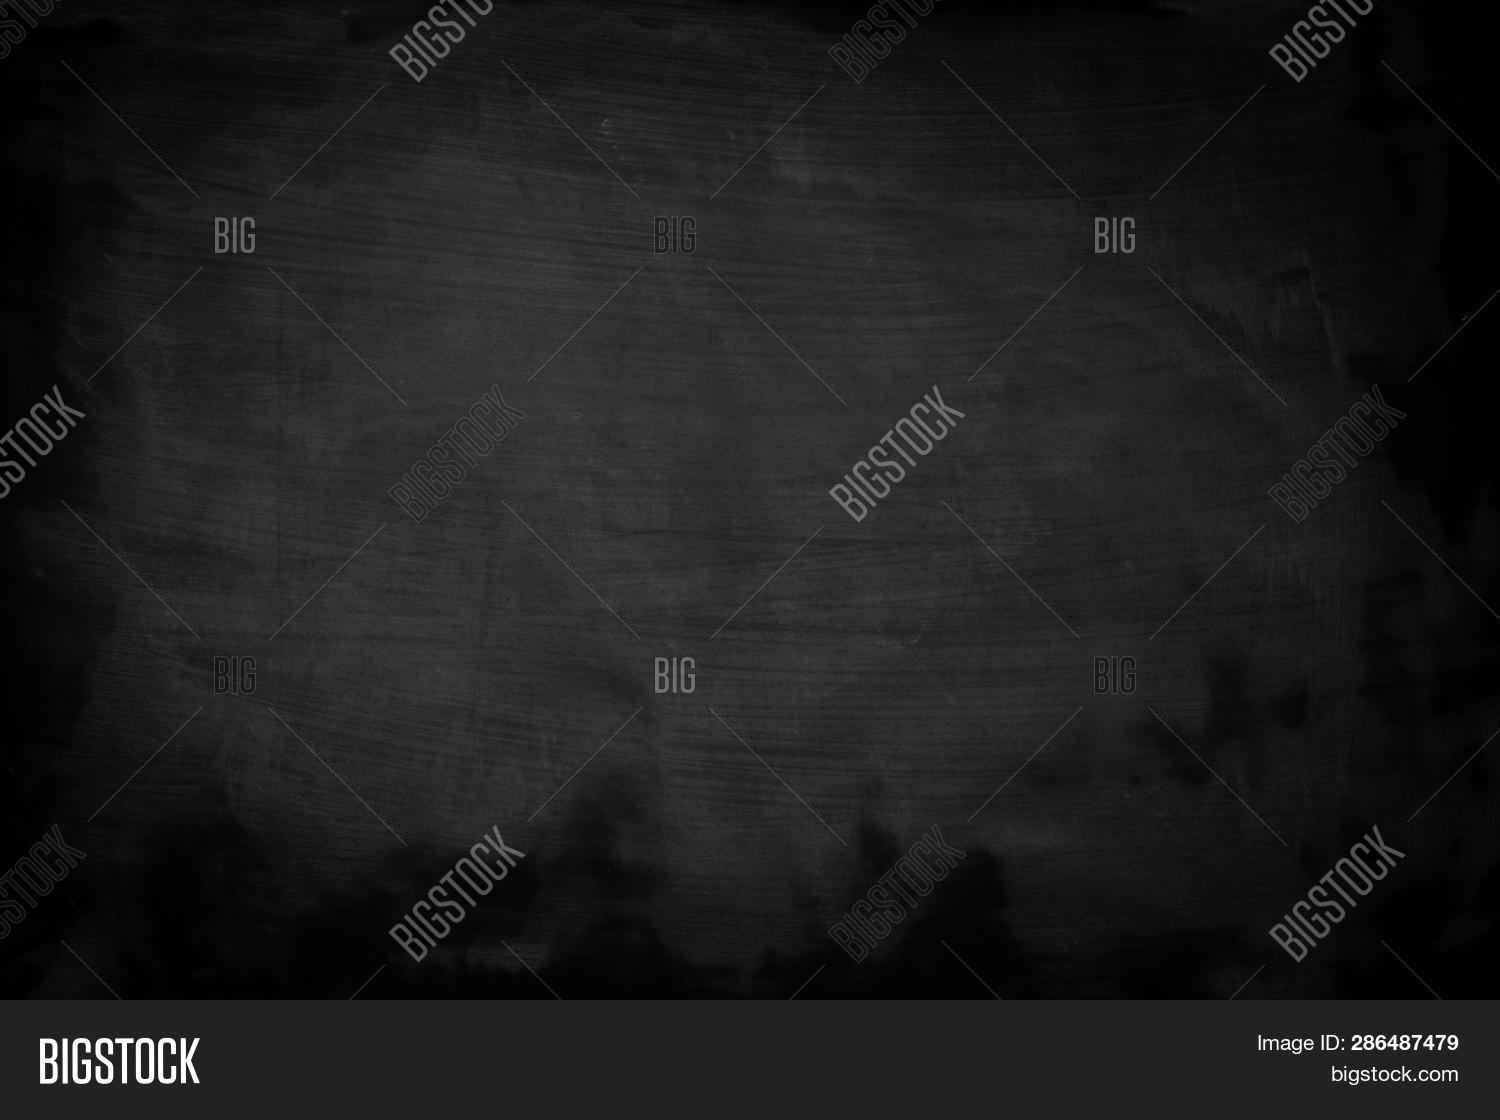 Abstract chalk rubbed out on blackboard or chalkboard background. Texture of a black chalkboard.Empty blank black chalkboard or chalk traces. Education and learning background with blackboard or chalkboard. Black chalkboard for sale offer advertising